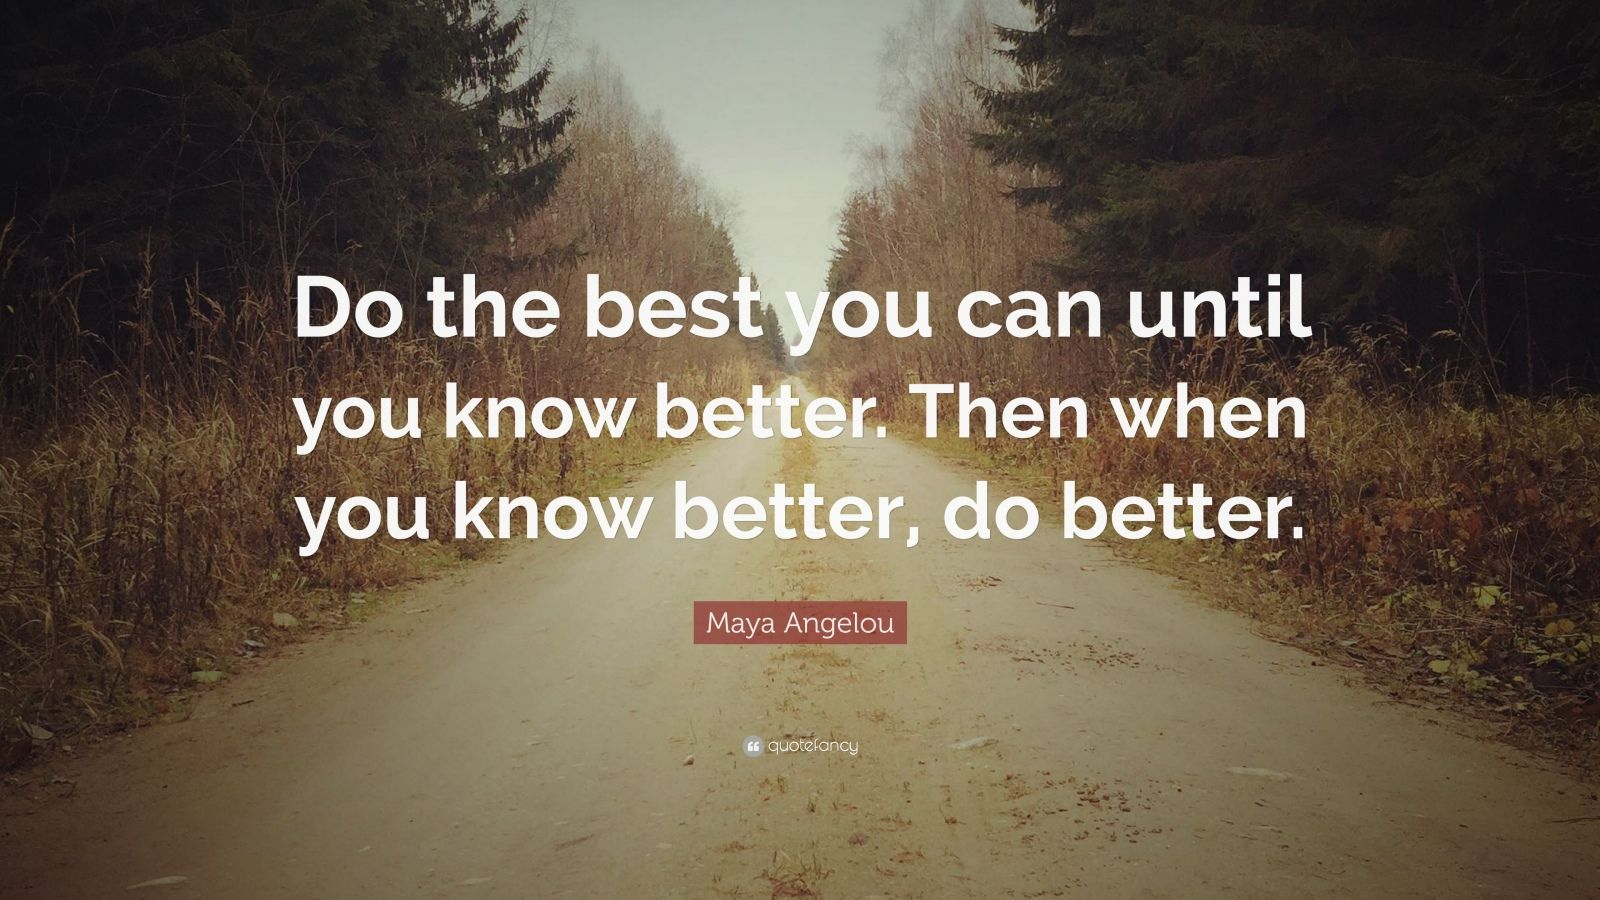 "Integrity Quotes: ""Do the best you can until you know better. Then when you know better, do better."" — Maya Angelou"